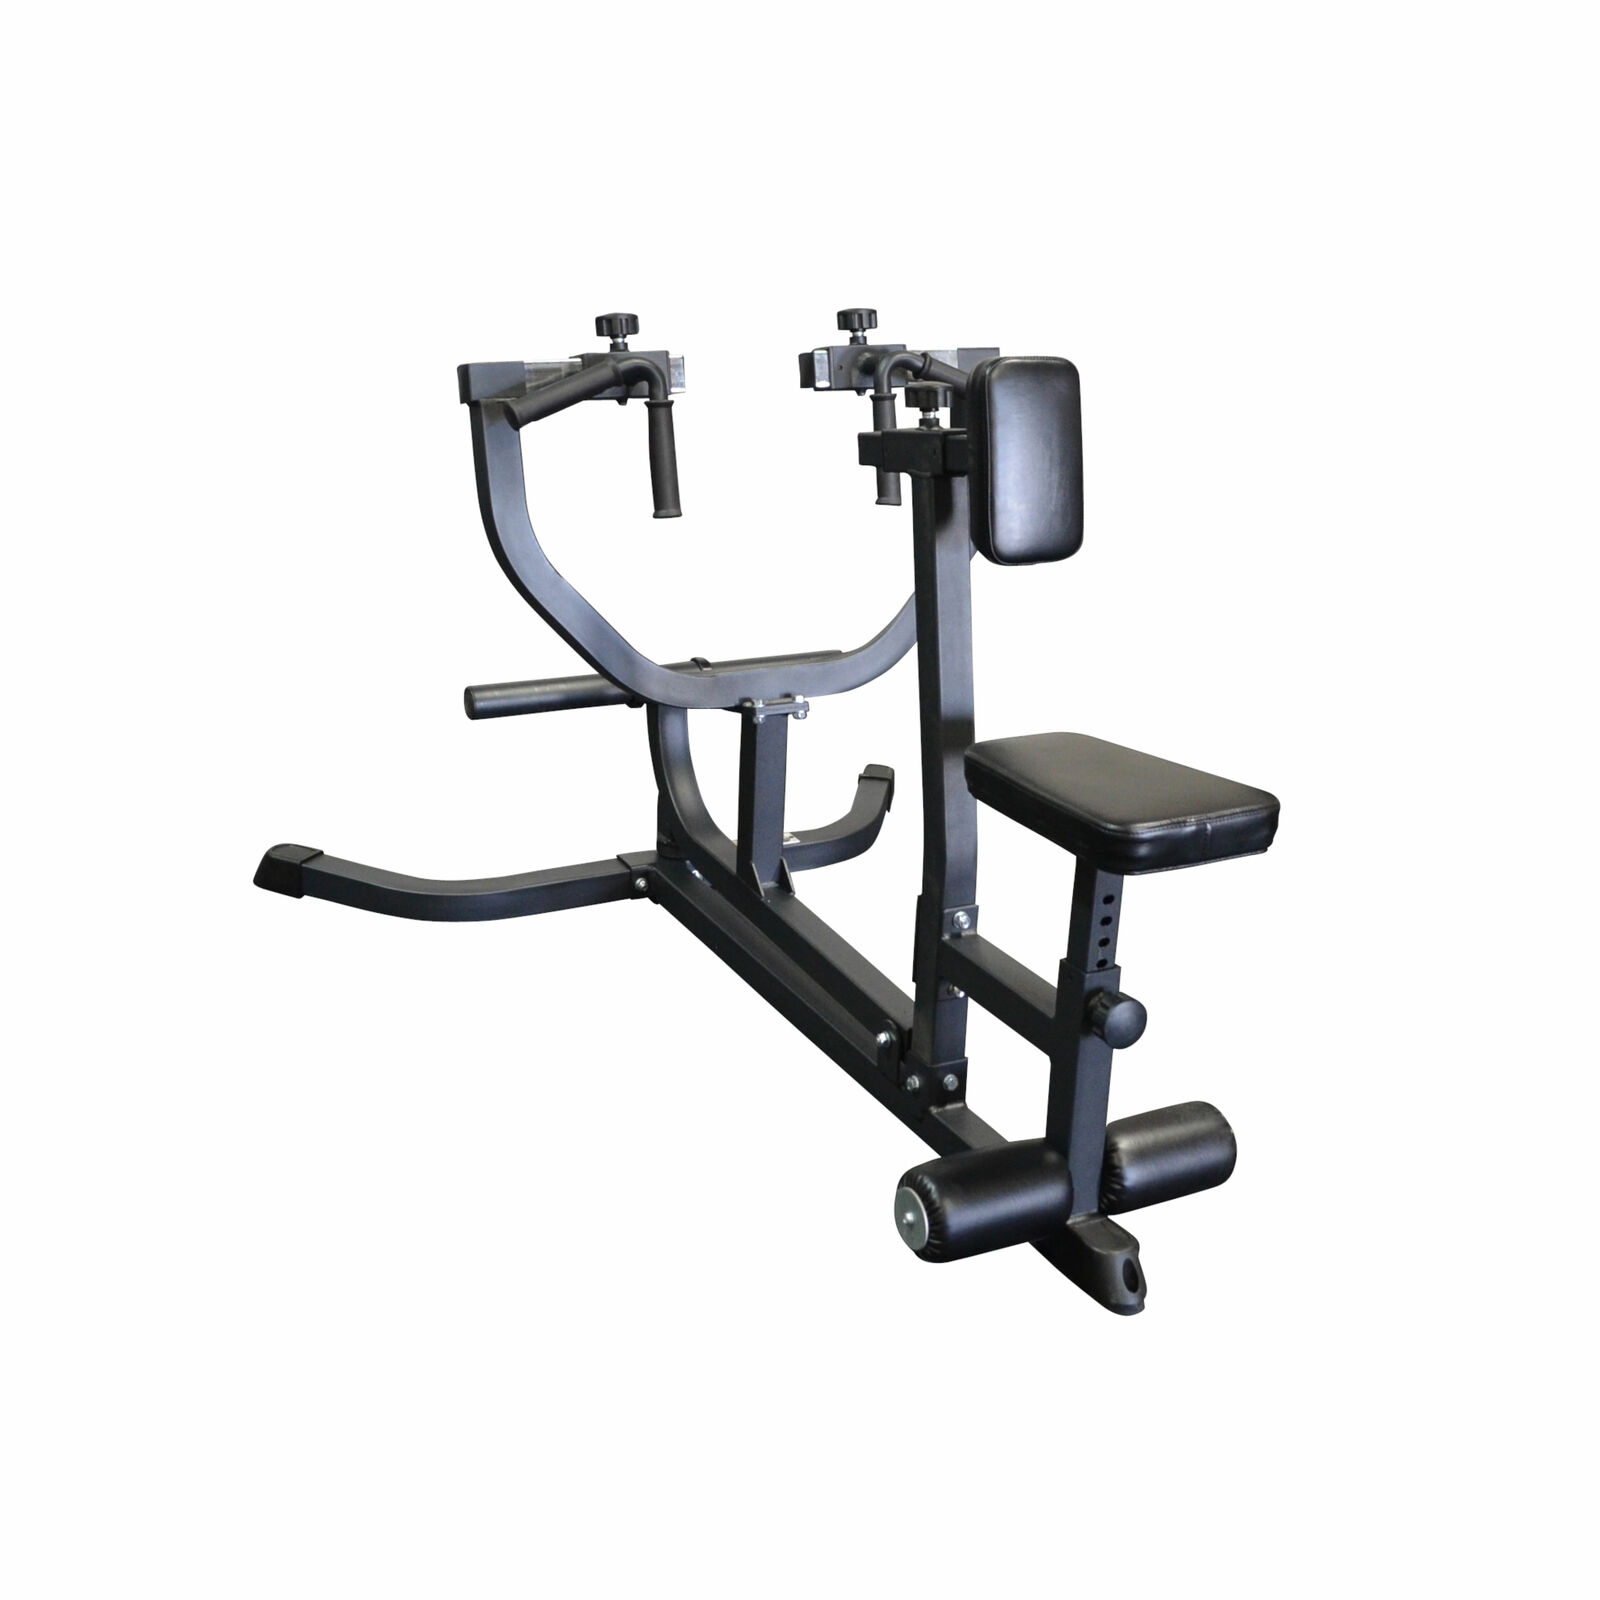 Titan Fitness Plate Loaded Seated Row